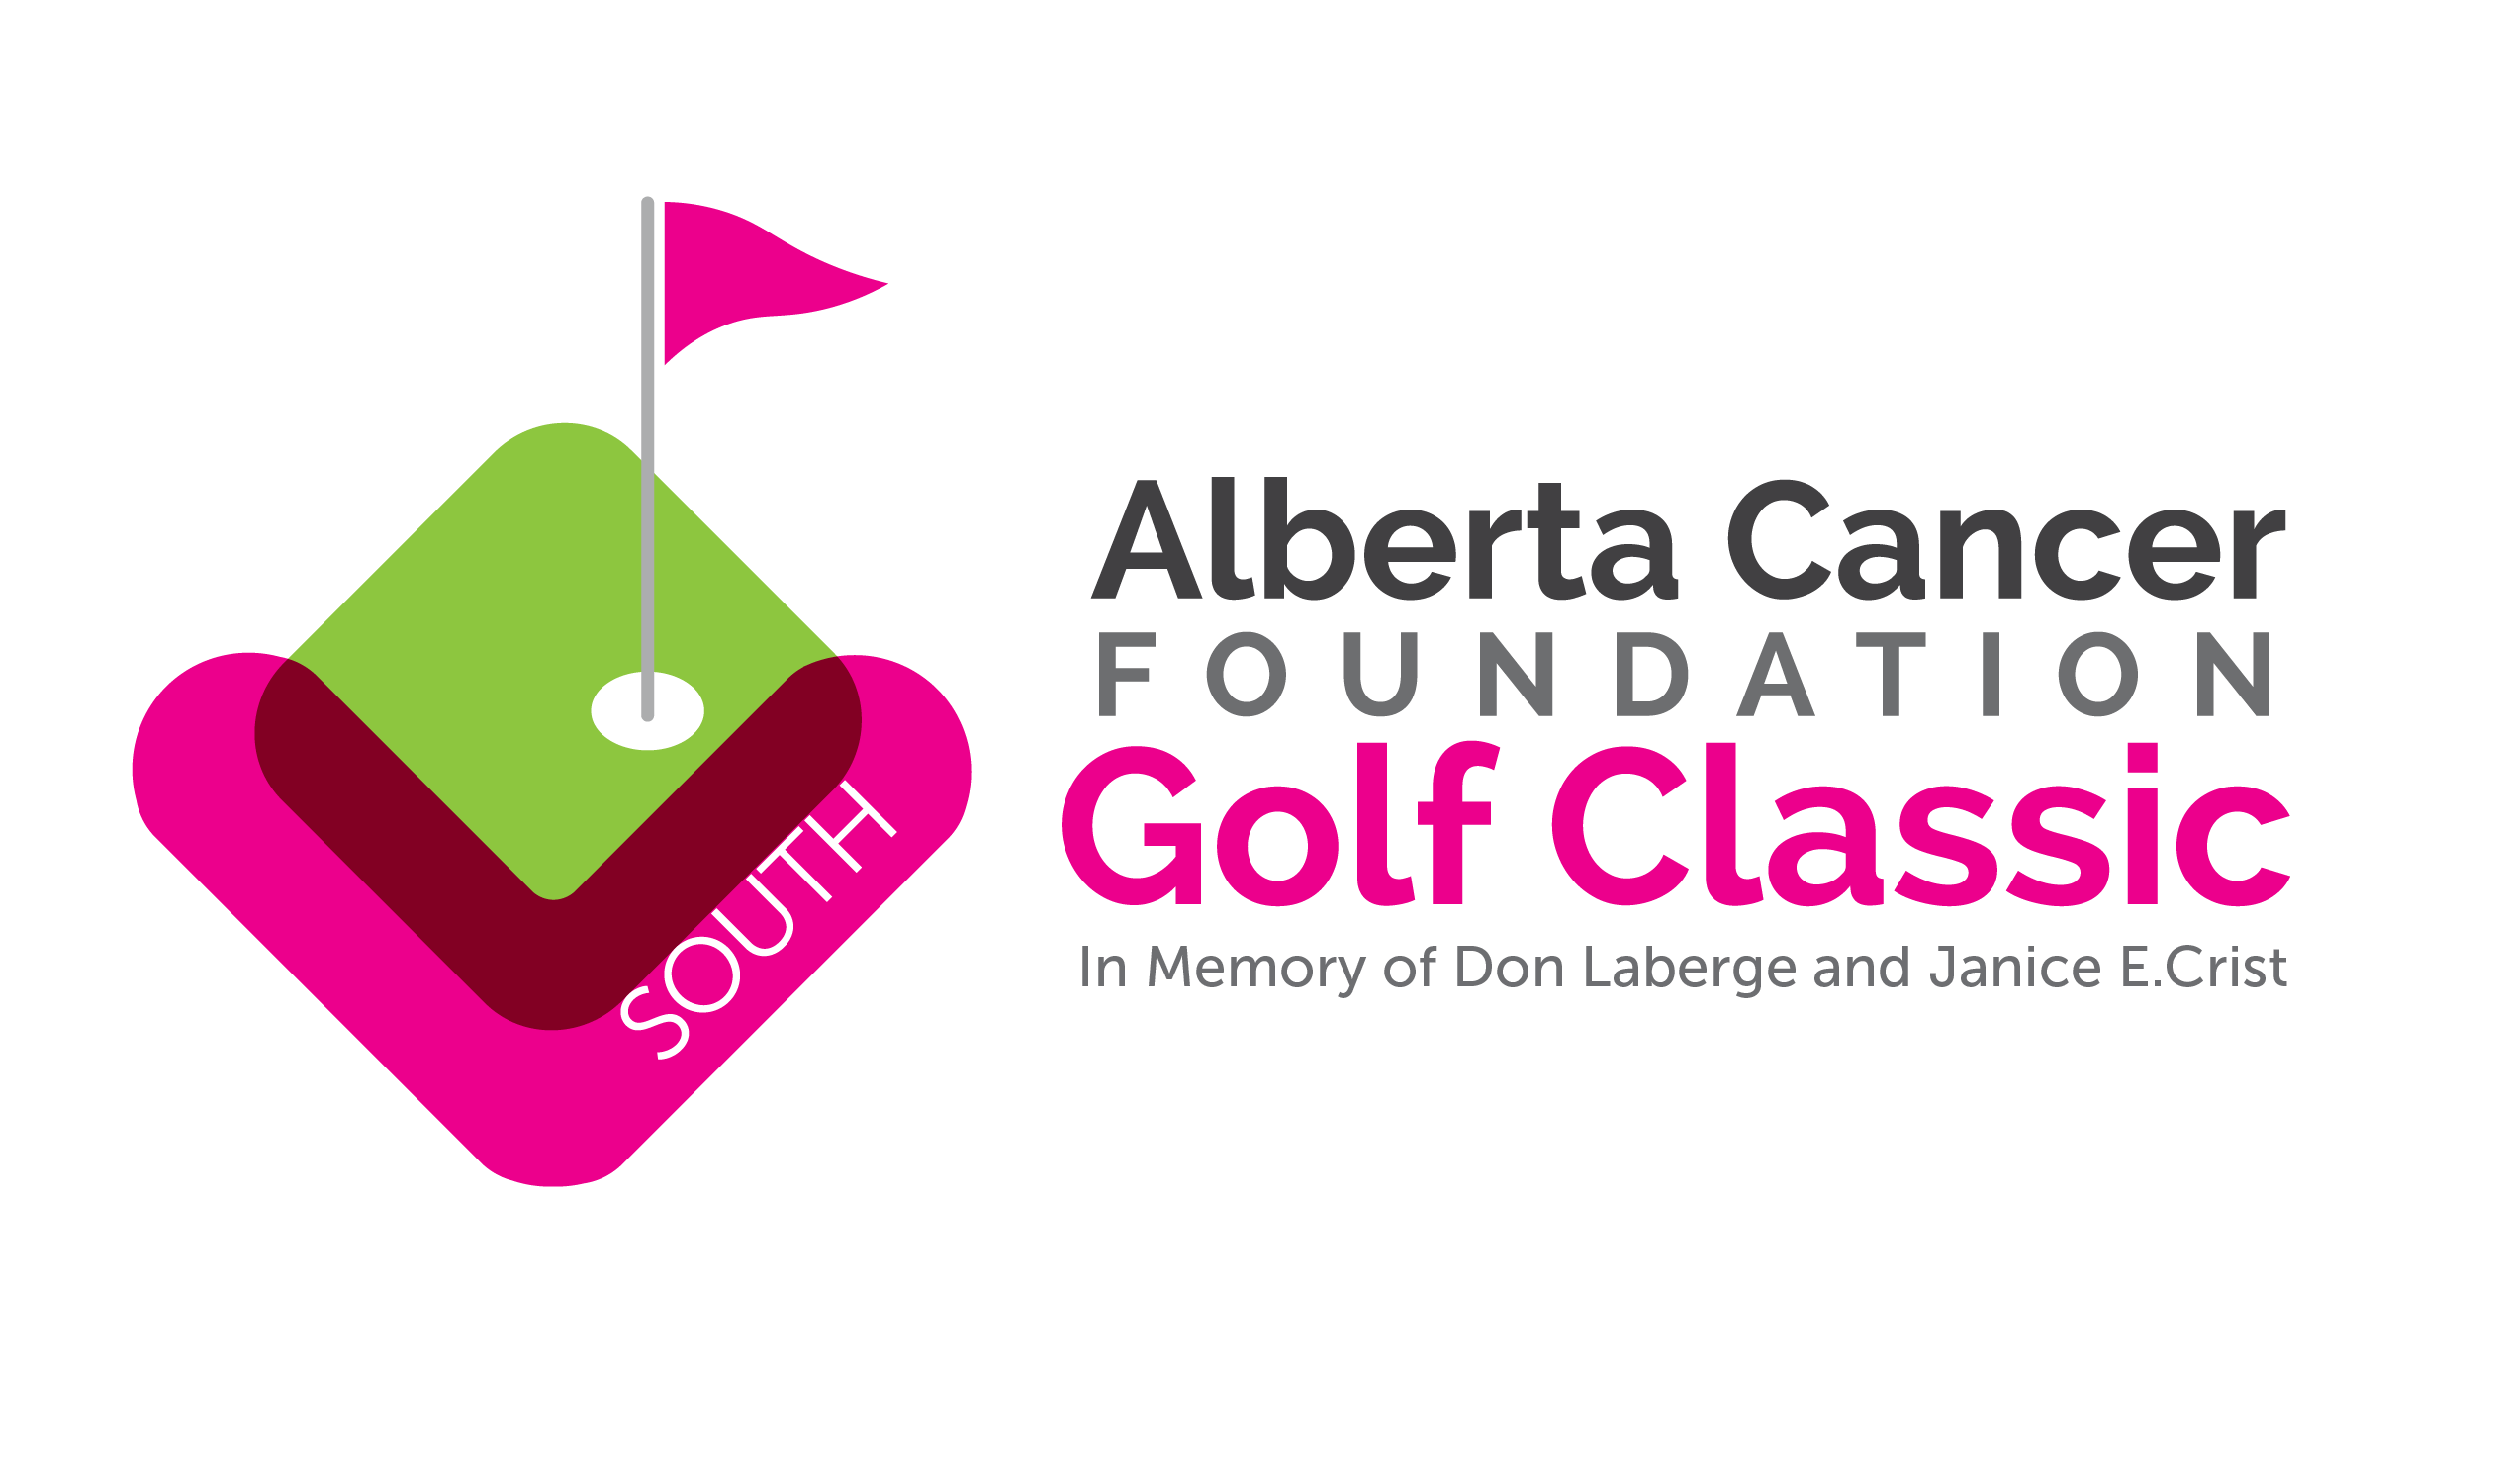 Signature Event: Alberta Cancer Foundation Golf Classic - South